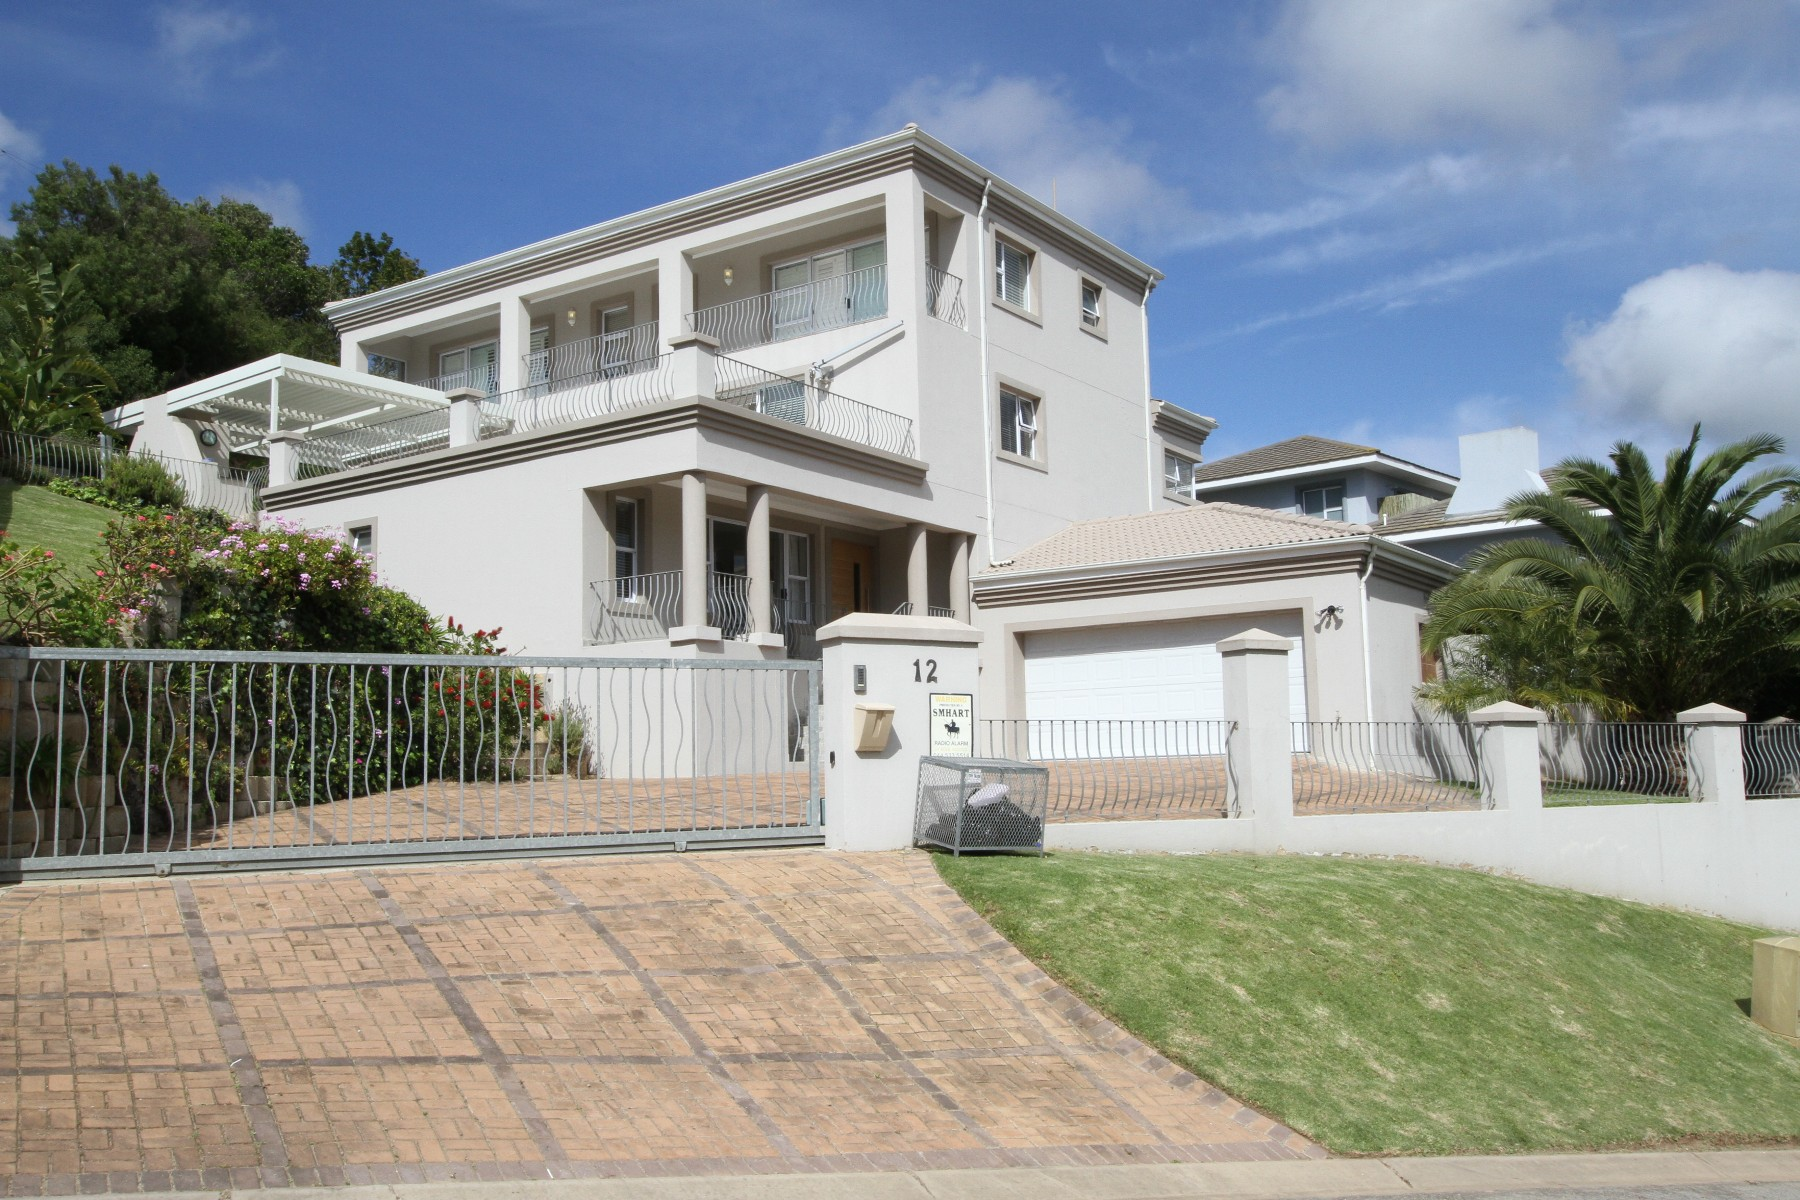 Maison unifamiliale pour l Vente à Immaculate modern home Plettenberg Bay, Cap-Occidental, 6600 Afrique Du Sud